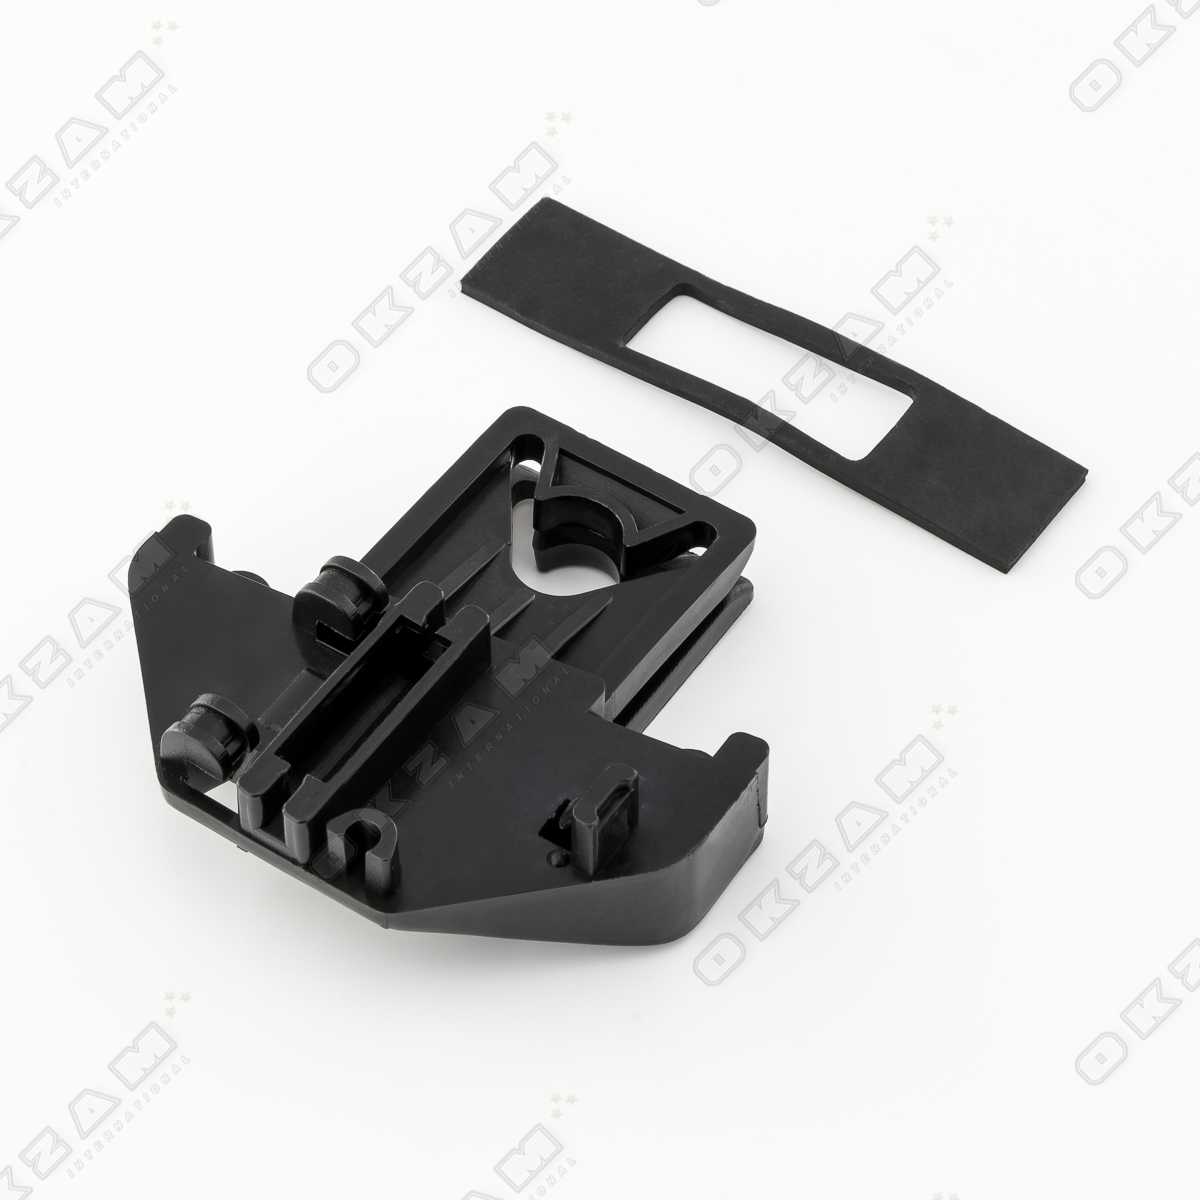 Jaguar s type window regulator repair kit rear right for 2001 jaguar s type window regulator